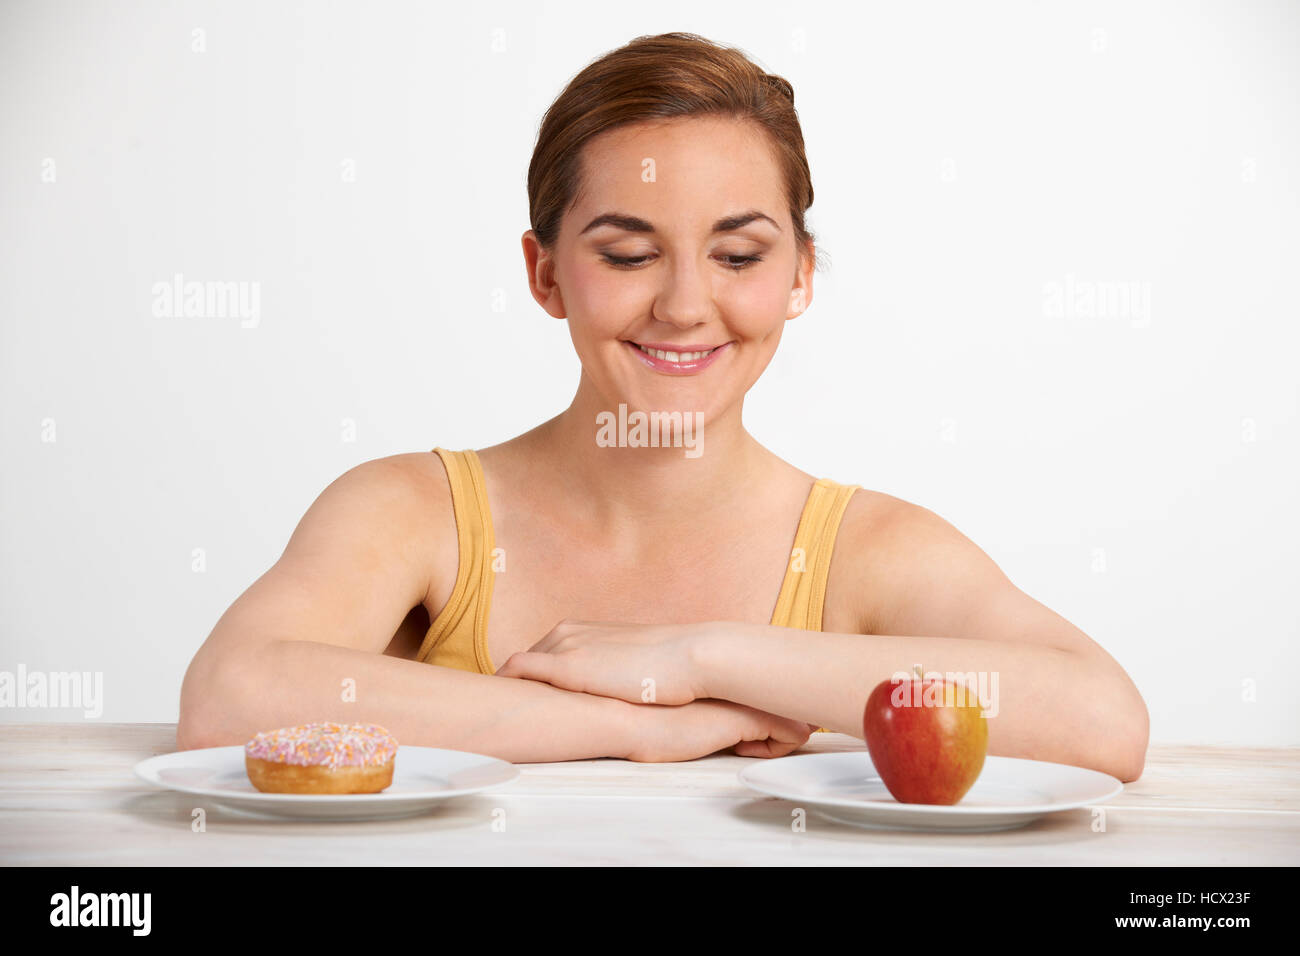 Young Woman Choosing Between Doughnut And Cake For Snack - Stock Photo